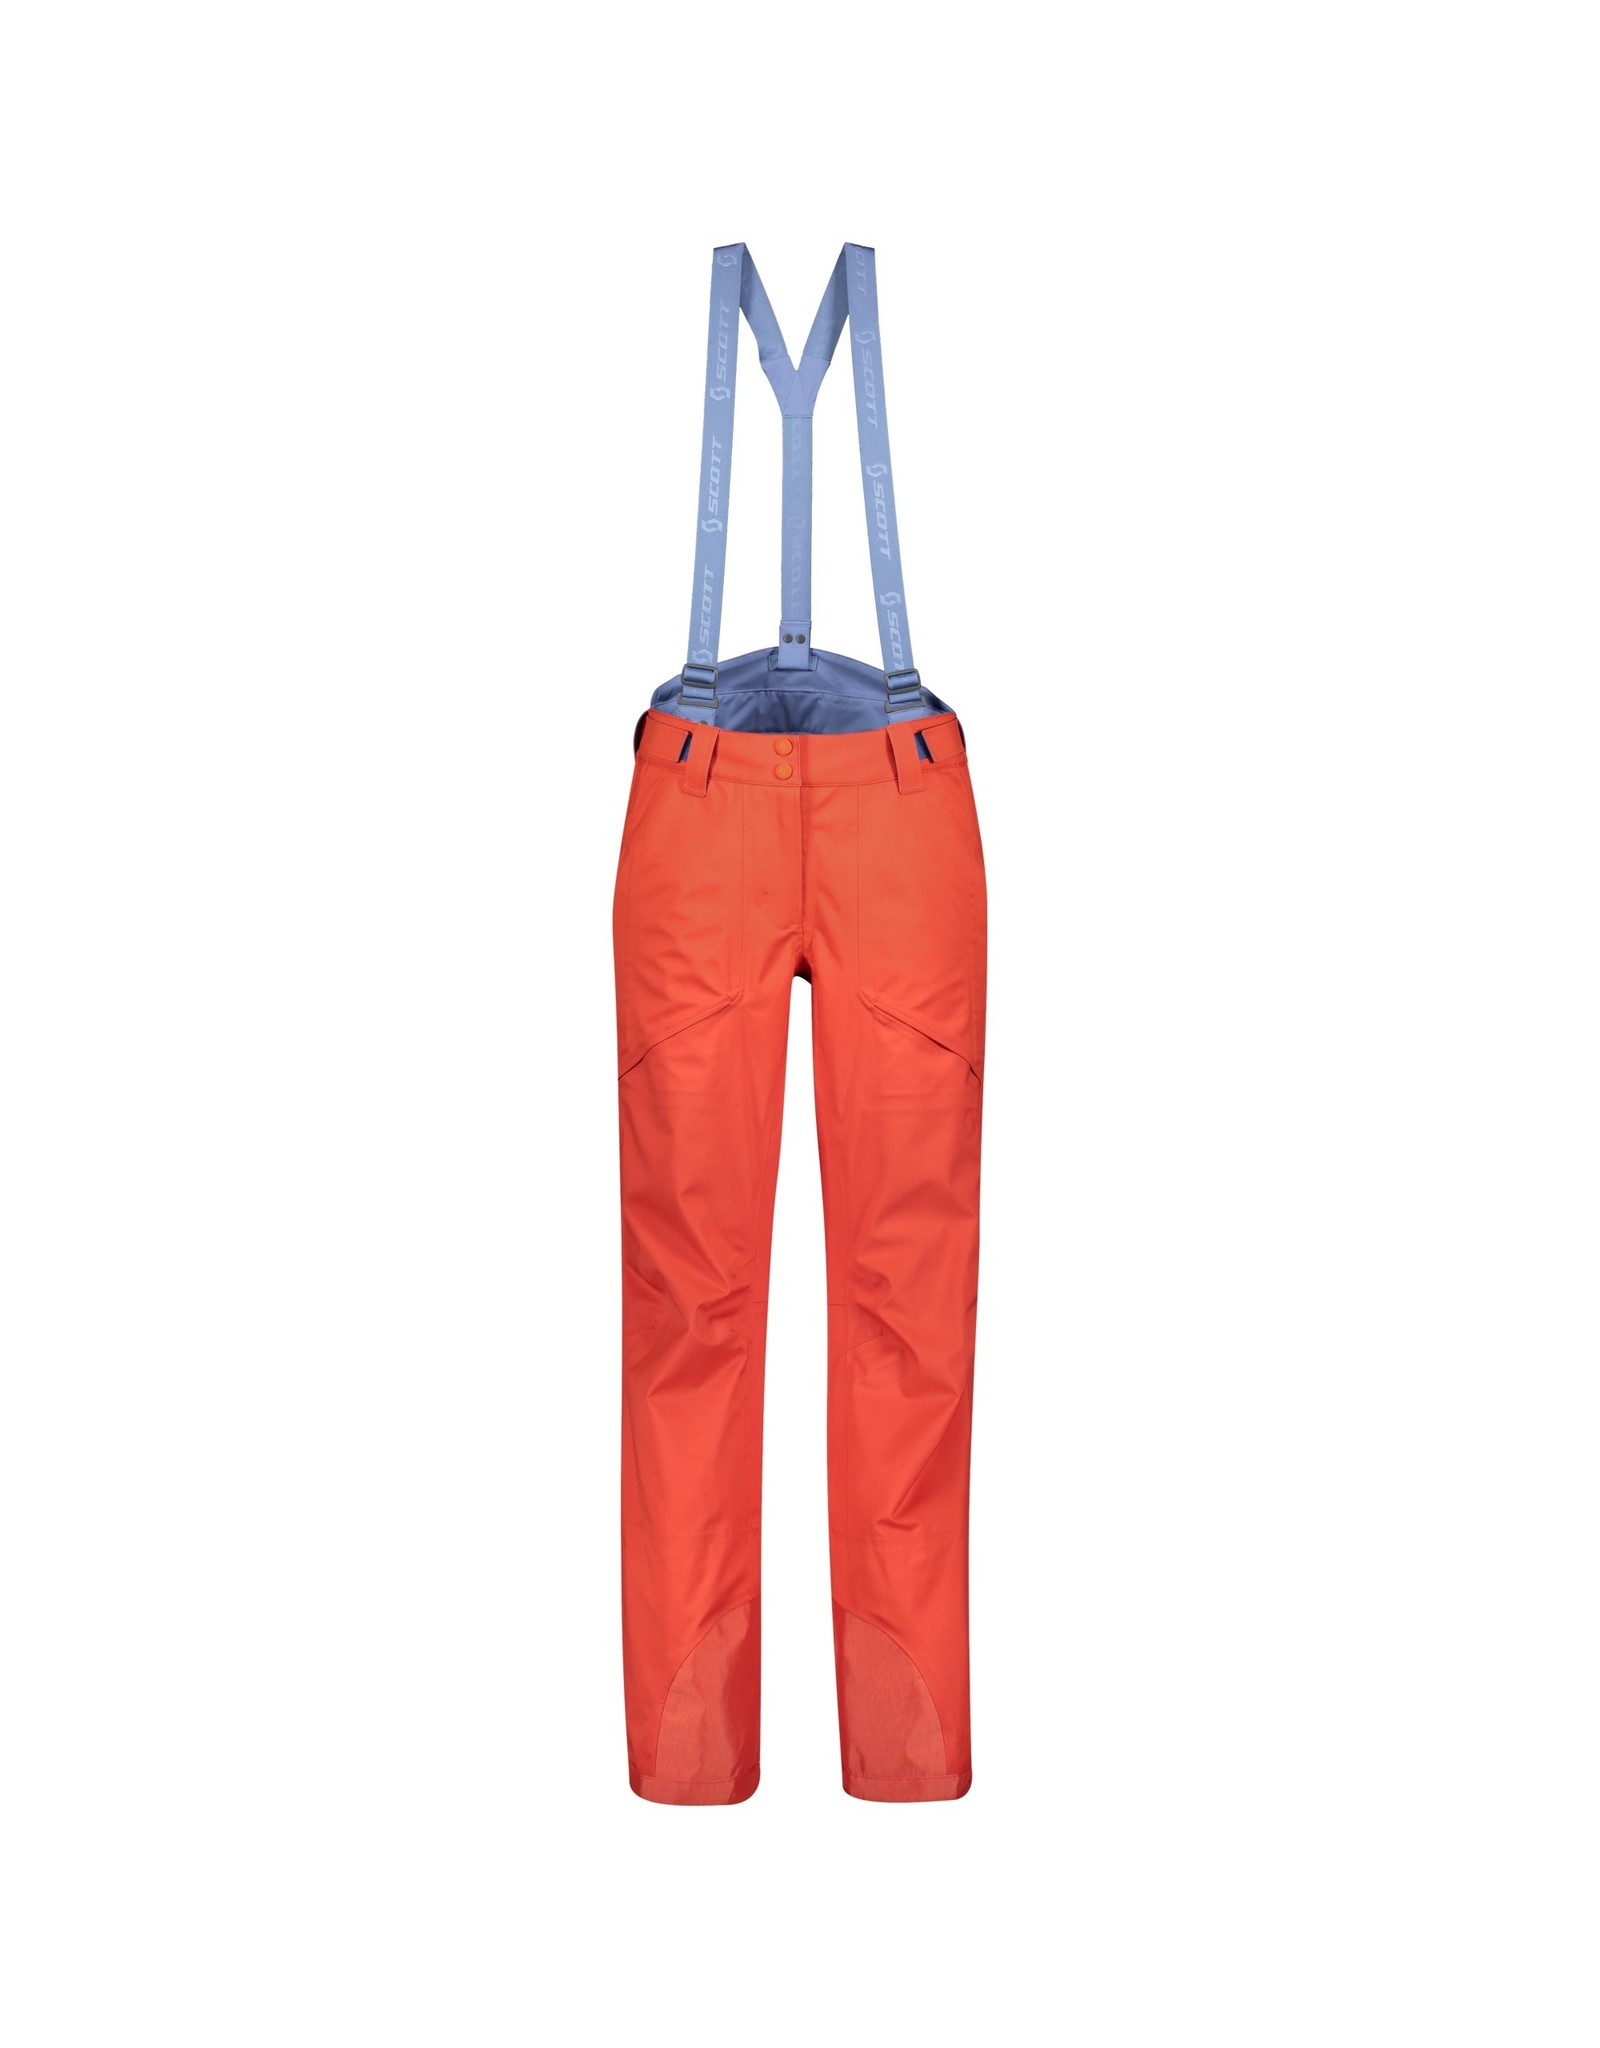 Scott Explorair 3L W Pant Grenadine